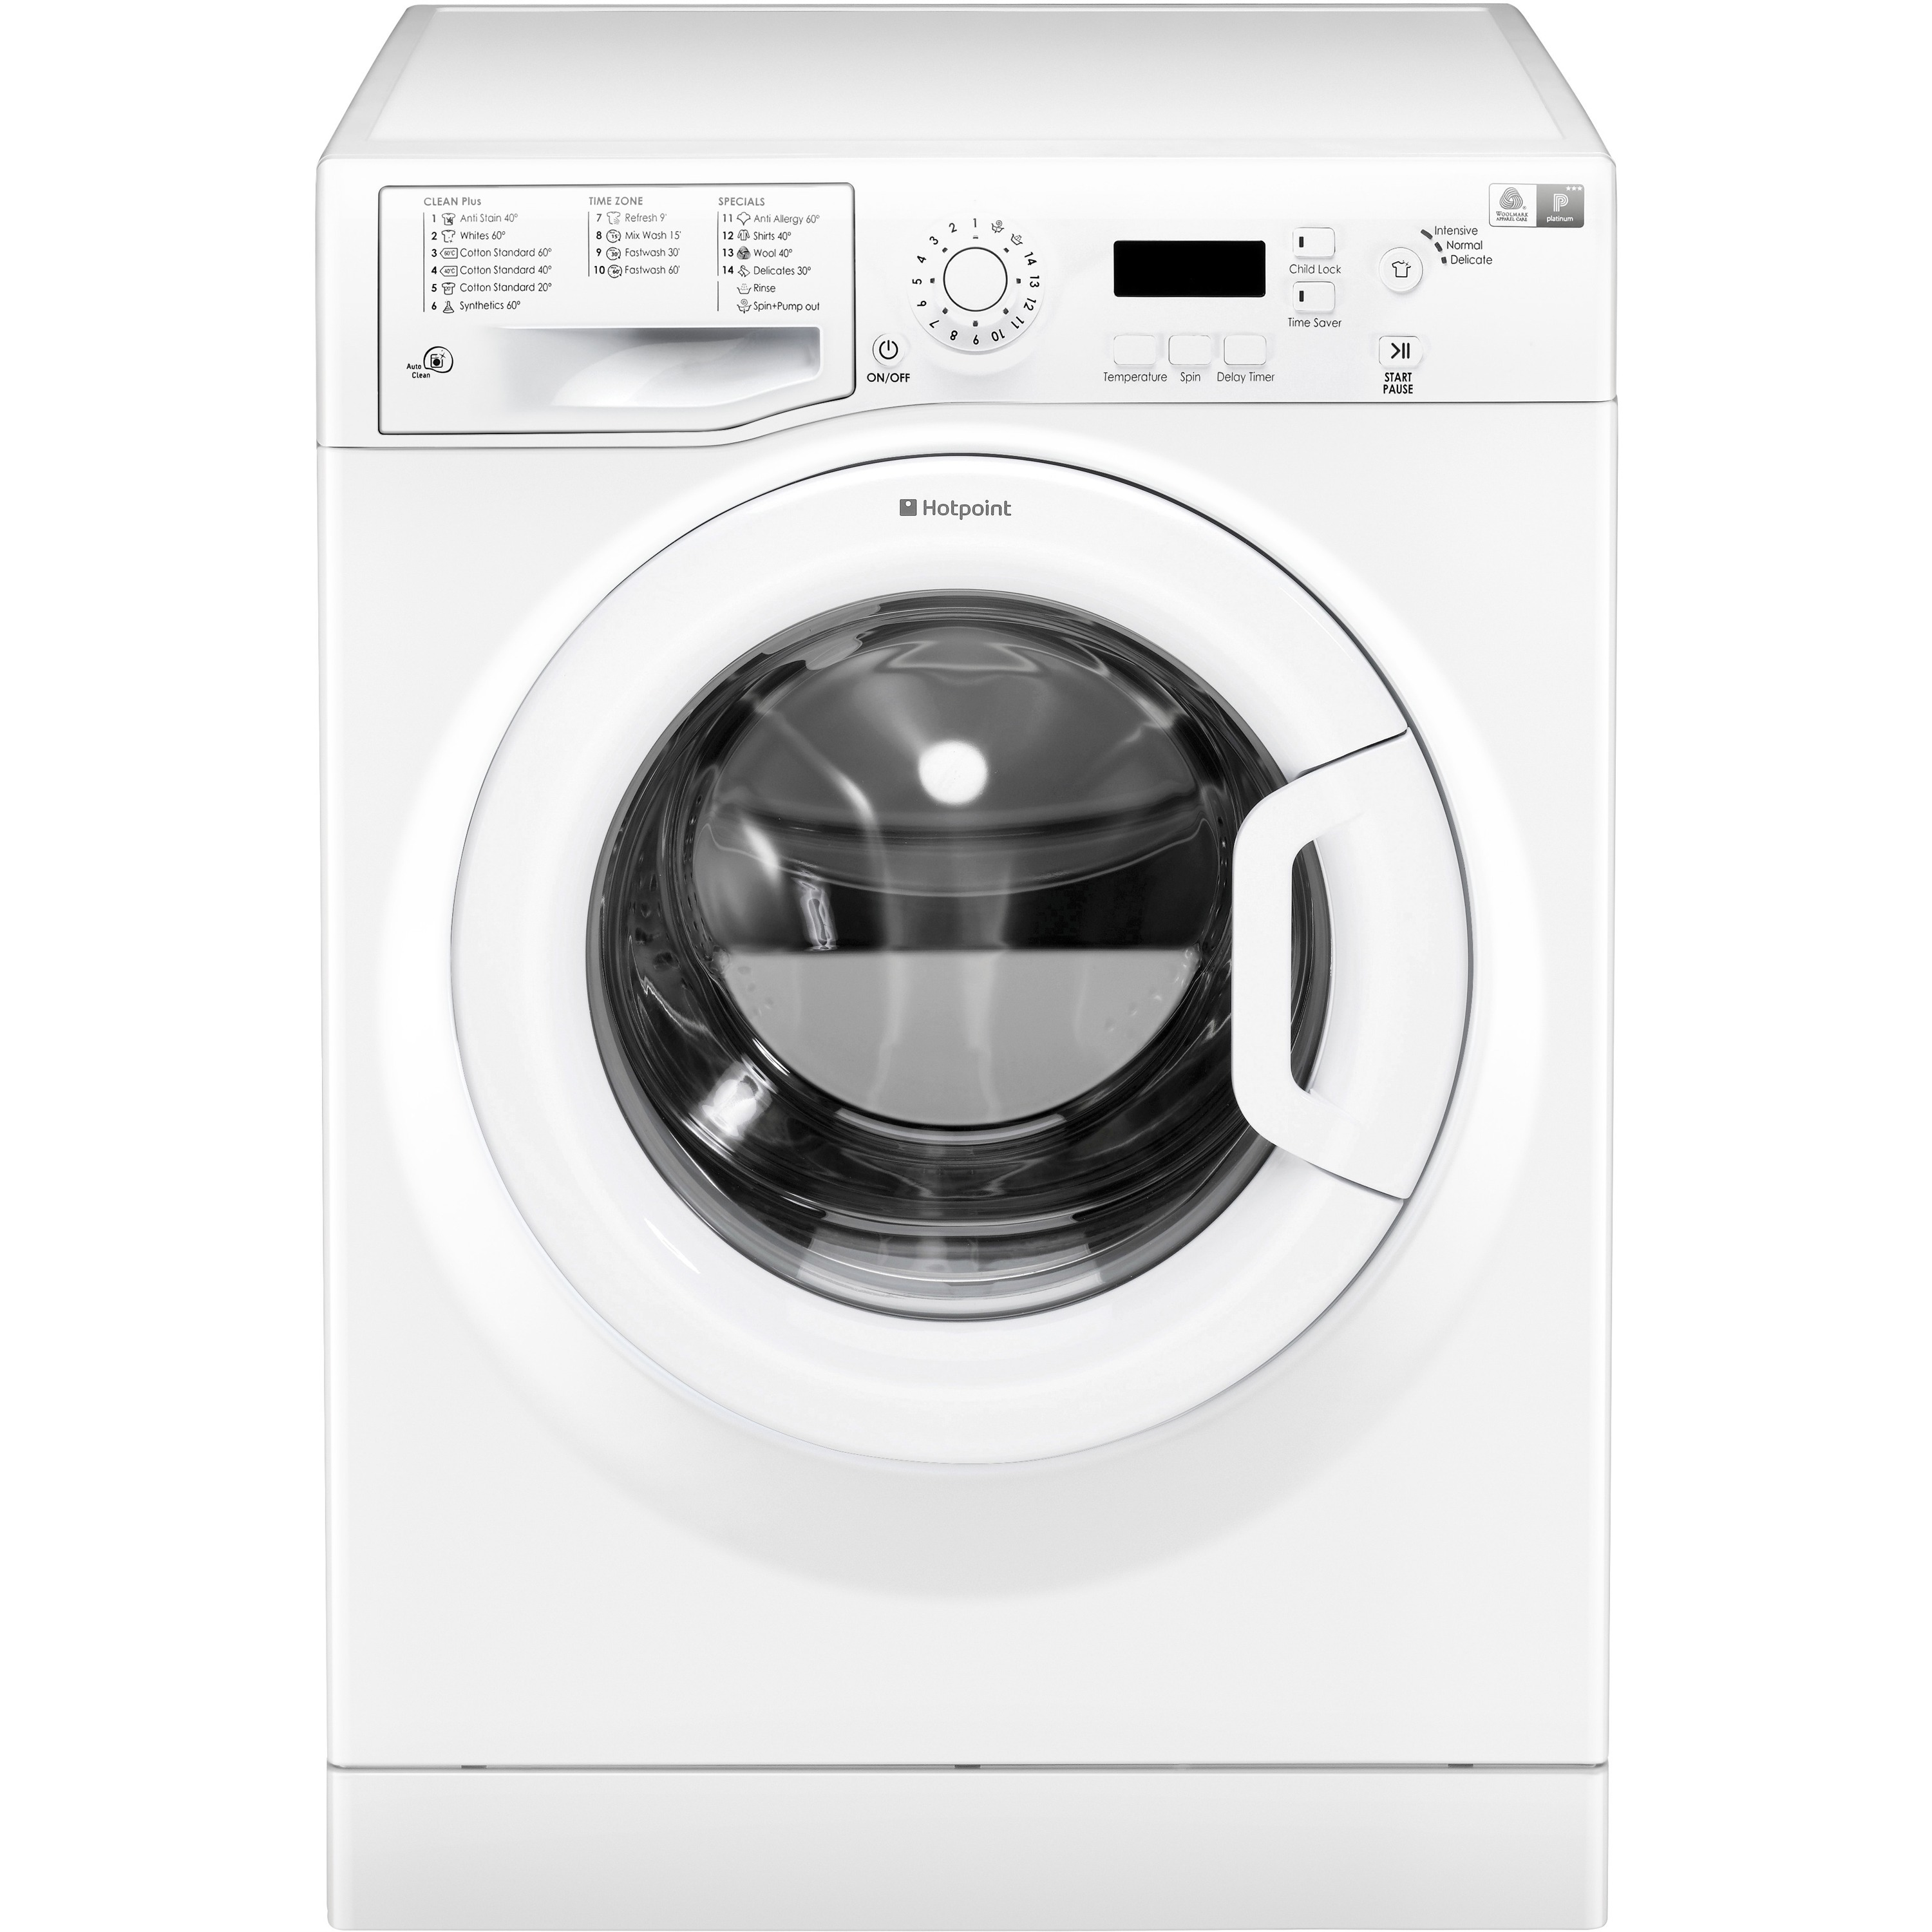 Hotpoint Top Loading Washing Machine Hotpoint 1400 Spin 7kg Washing Machine Wmeuf743p